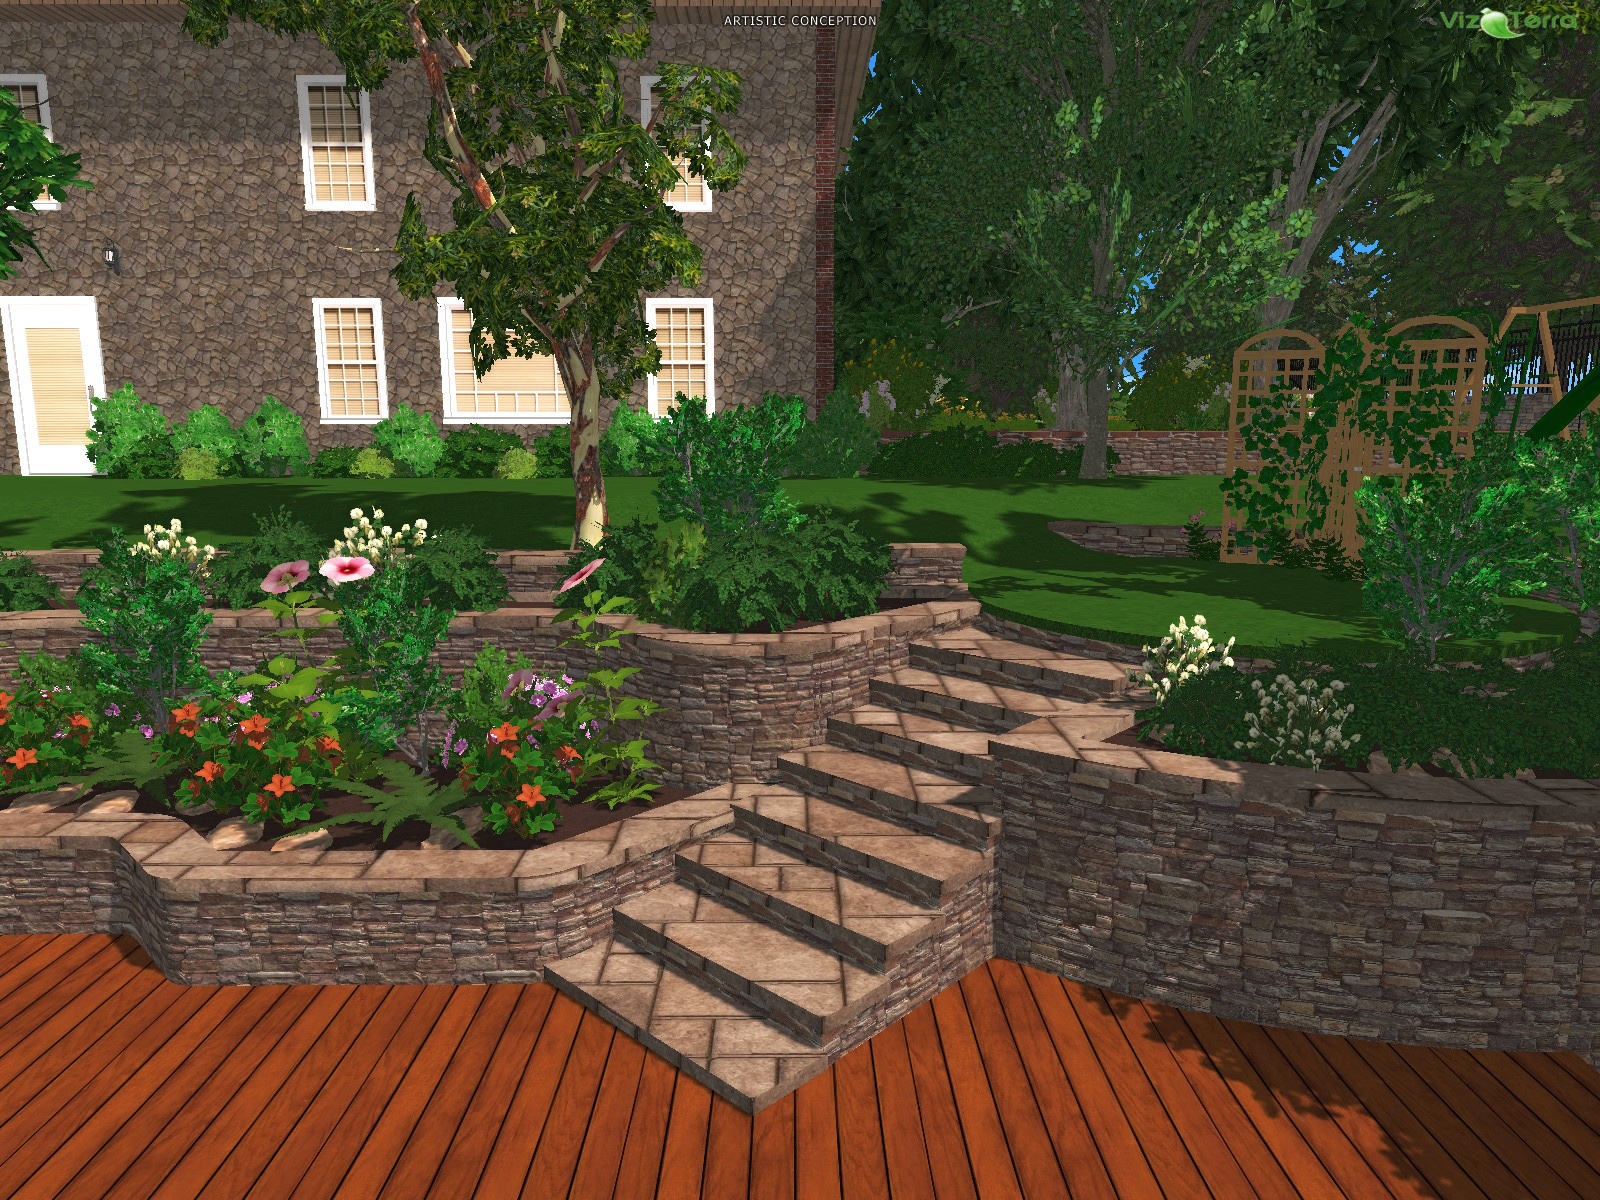 Backyard Landscape Design Software Free free backyard design software landscaping design landscaping design software free Creative Landscaping Software Expert Advice To Gardenplanning Options Order Plants And Products To Arrive On Your Doorstep Or Get The Information You Need